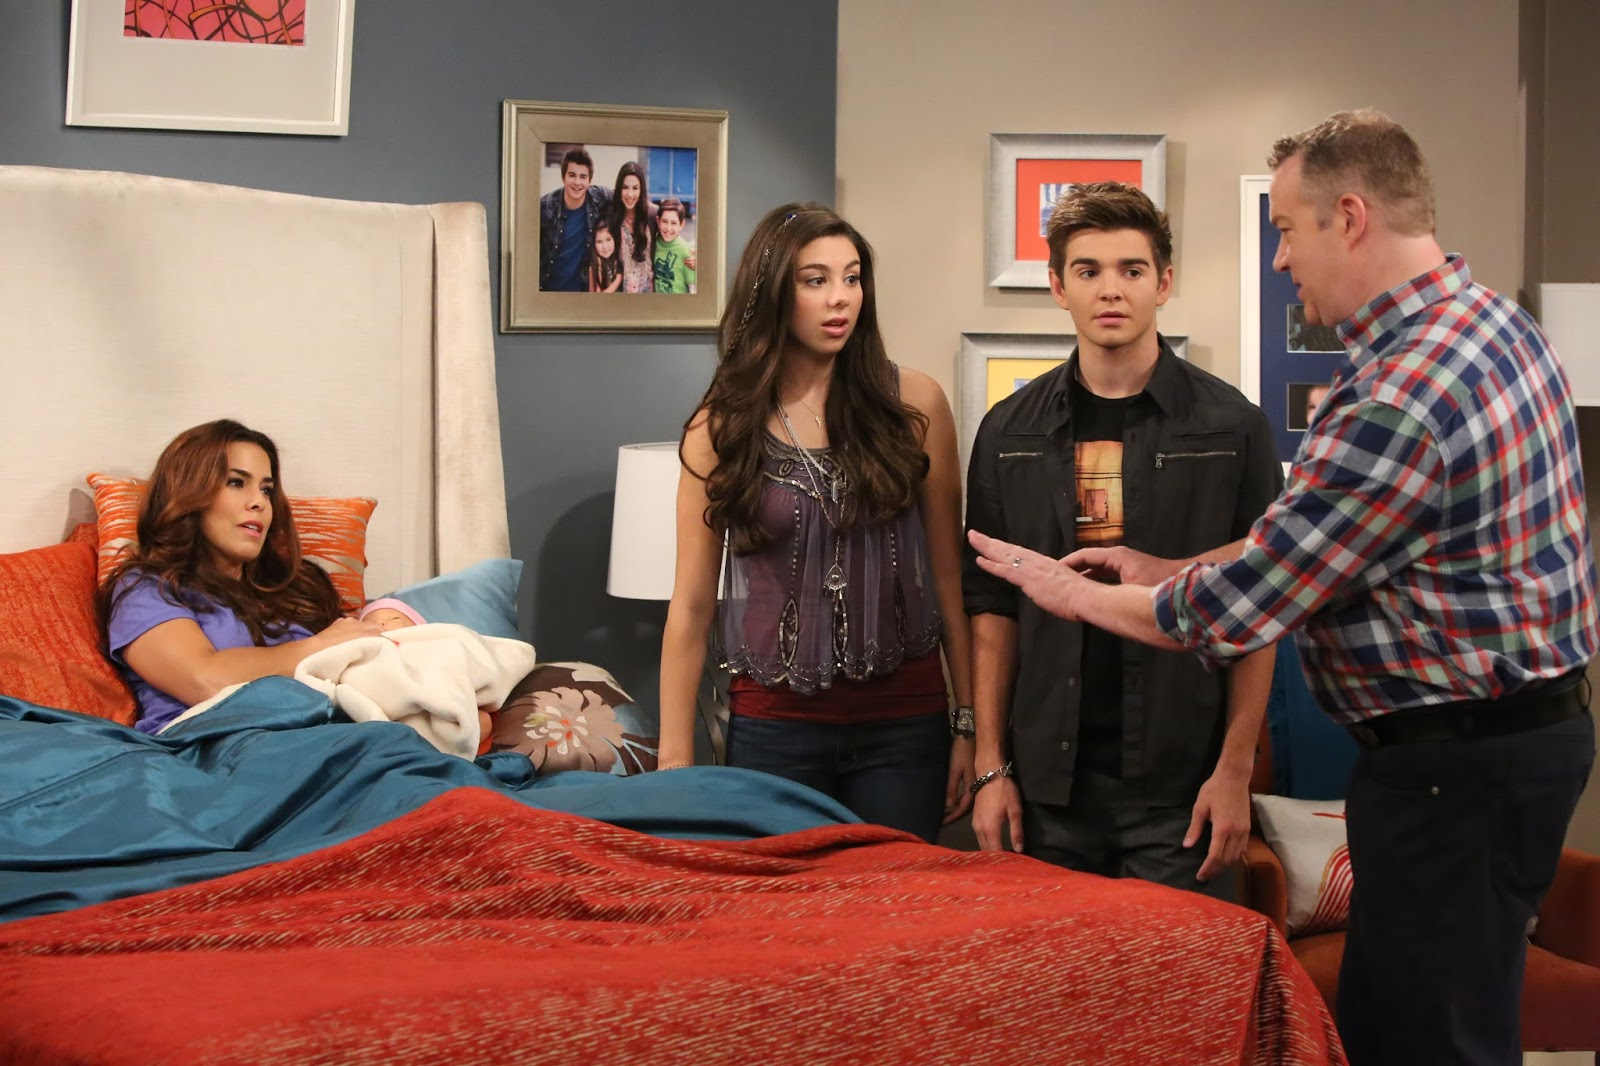 a hero is born pictured phoebe kira kosarin max jack griffo hank chris tallman and barb rosa blasi in the thundermans on nickelodeon